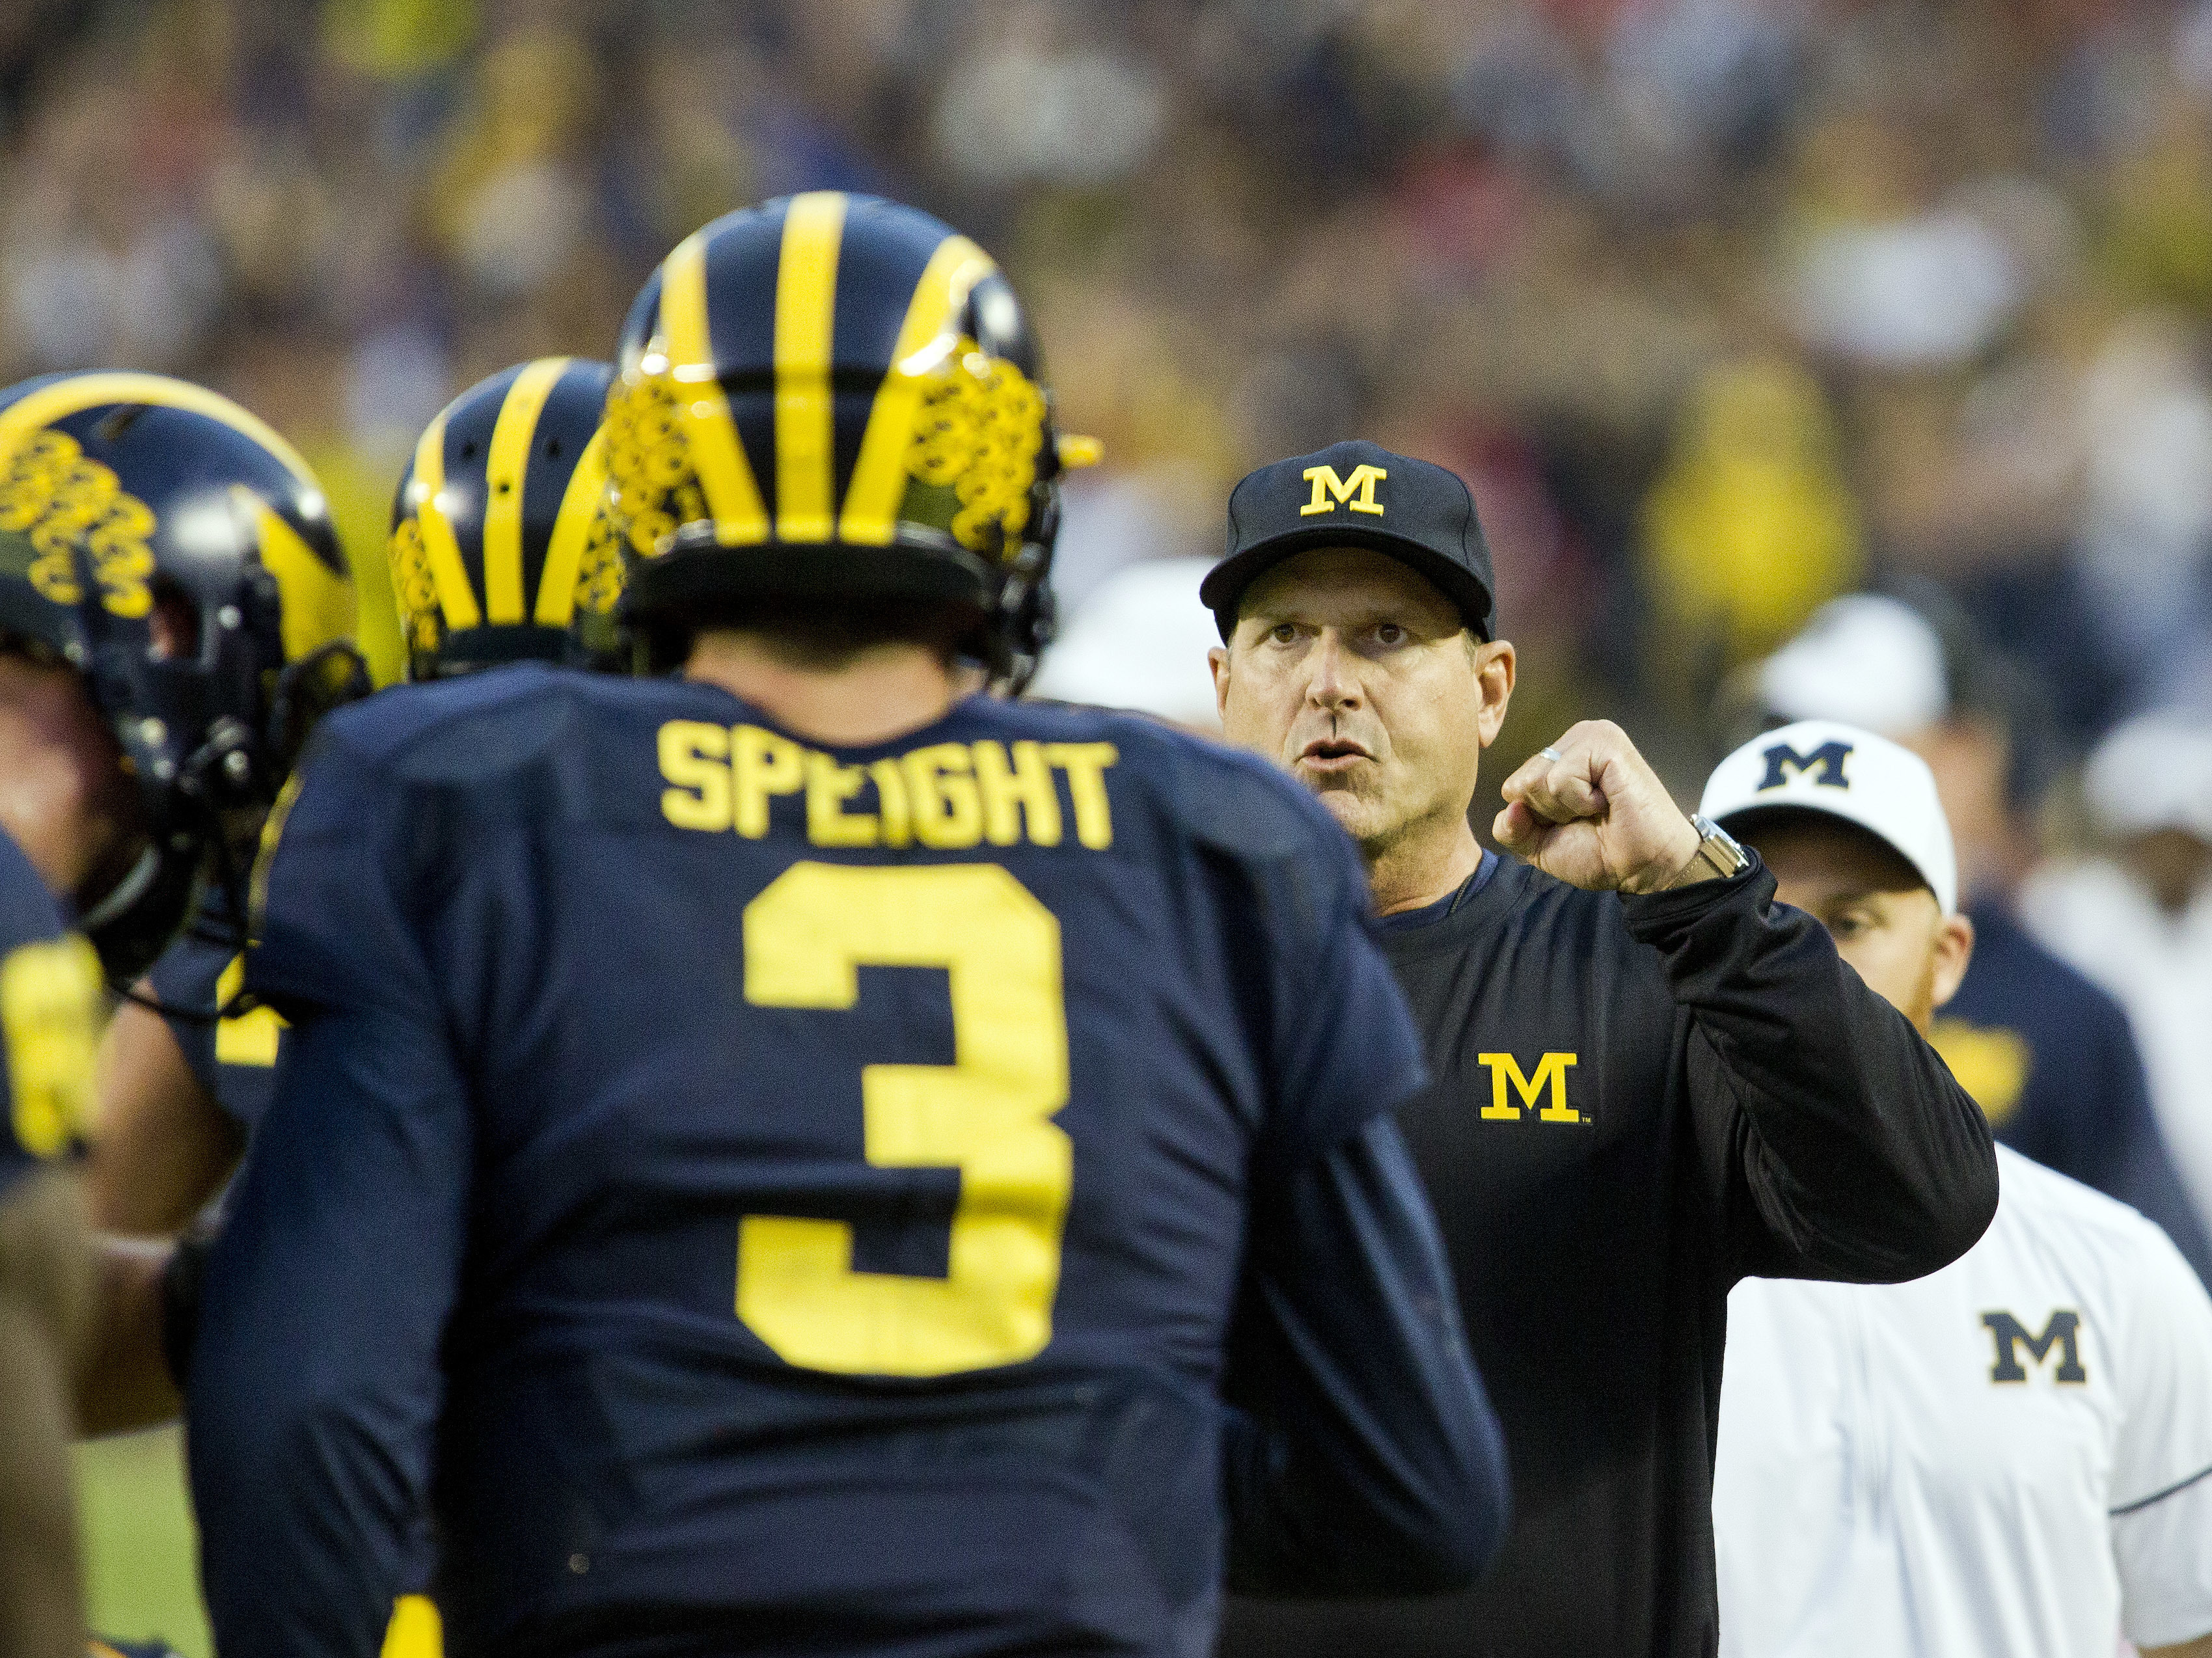 Michigan quarterback Wilton Speight (3) celebrates with head coach Jim Harbaugh, center, after a Michigan touchdown in the fourth quarter of an NCAA college football game against Wisconsin at Michigan Stadium in Ann Arbor, Mich., Saturday, Oct. 1, 2016. M